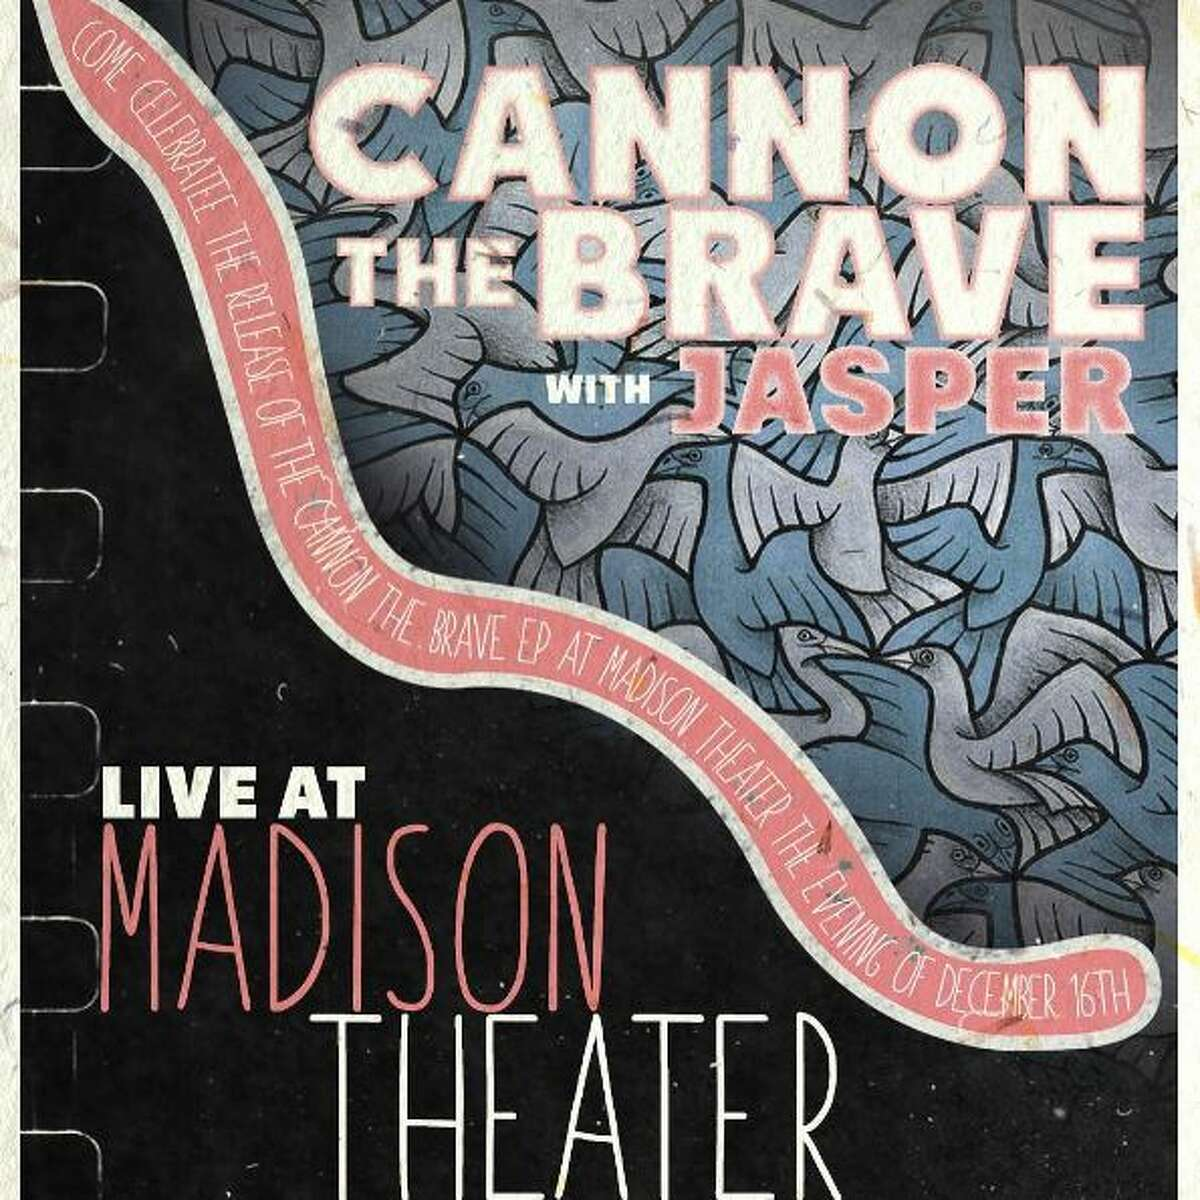 EP release party for Albany-based indie pop band,Cannon the Brave. Opening act: Jasper. When: Friday, Dec. 16, 8 PM. Where: Madison Theater, 1036 Madison Avenue, Albany. For tickets and more information, visit the website.